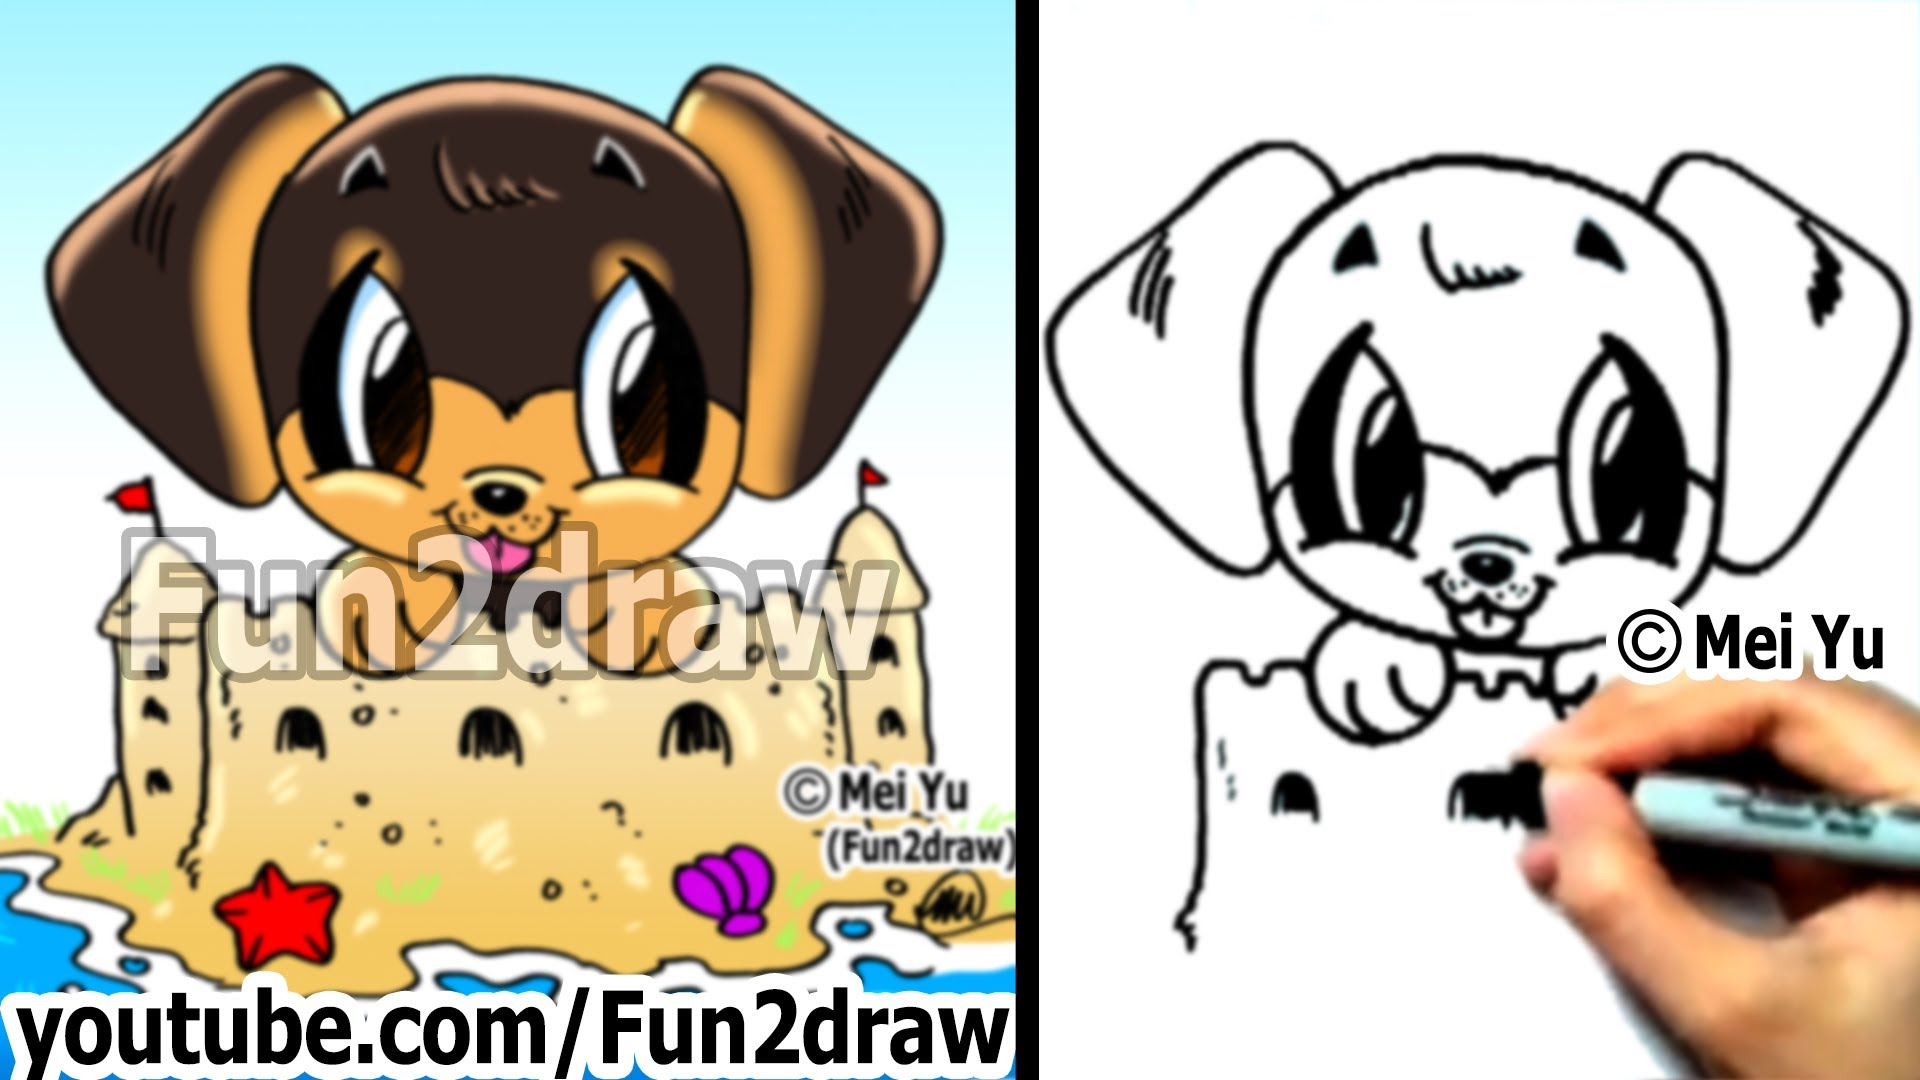 Drawn puppy fun2draw Fun2draw YouTube Rottweiler for Dog